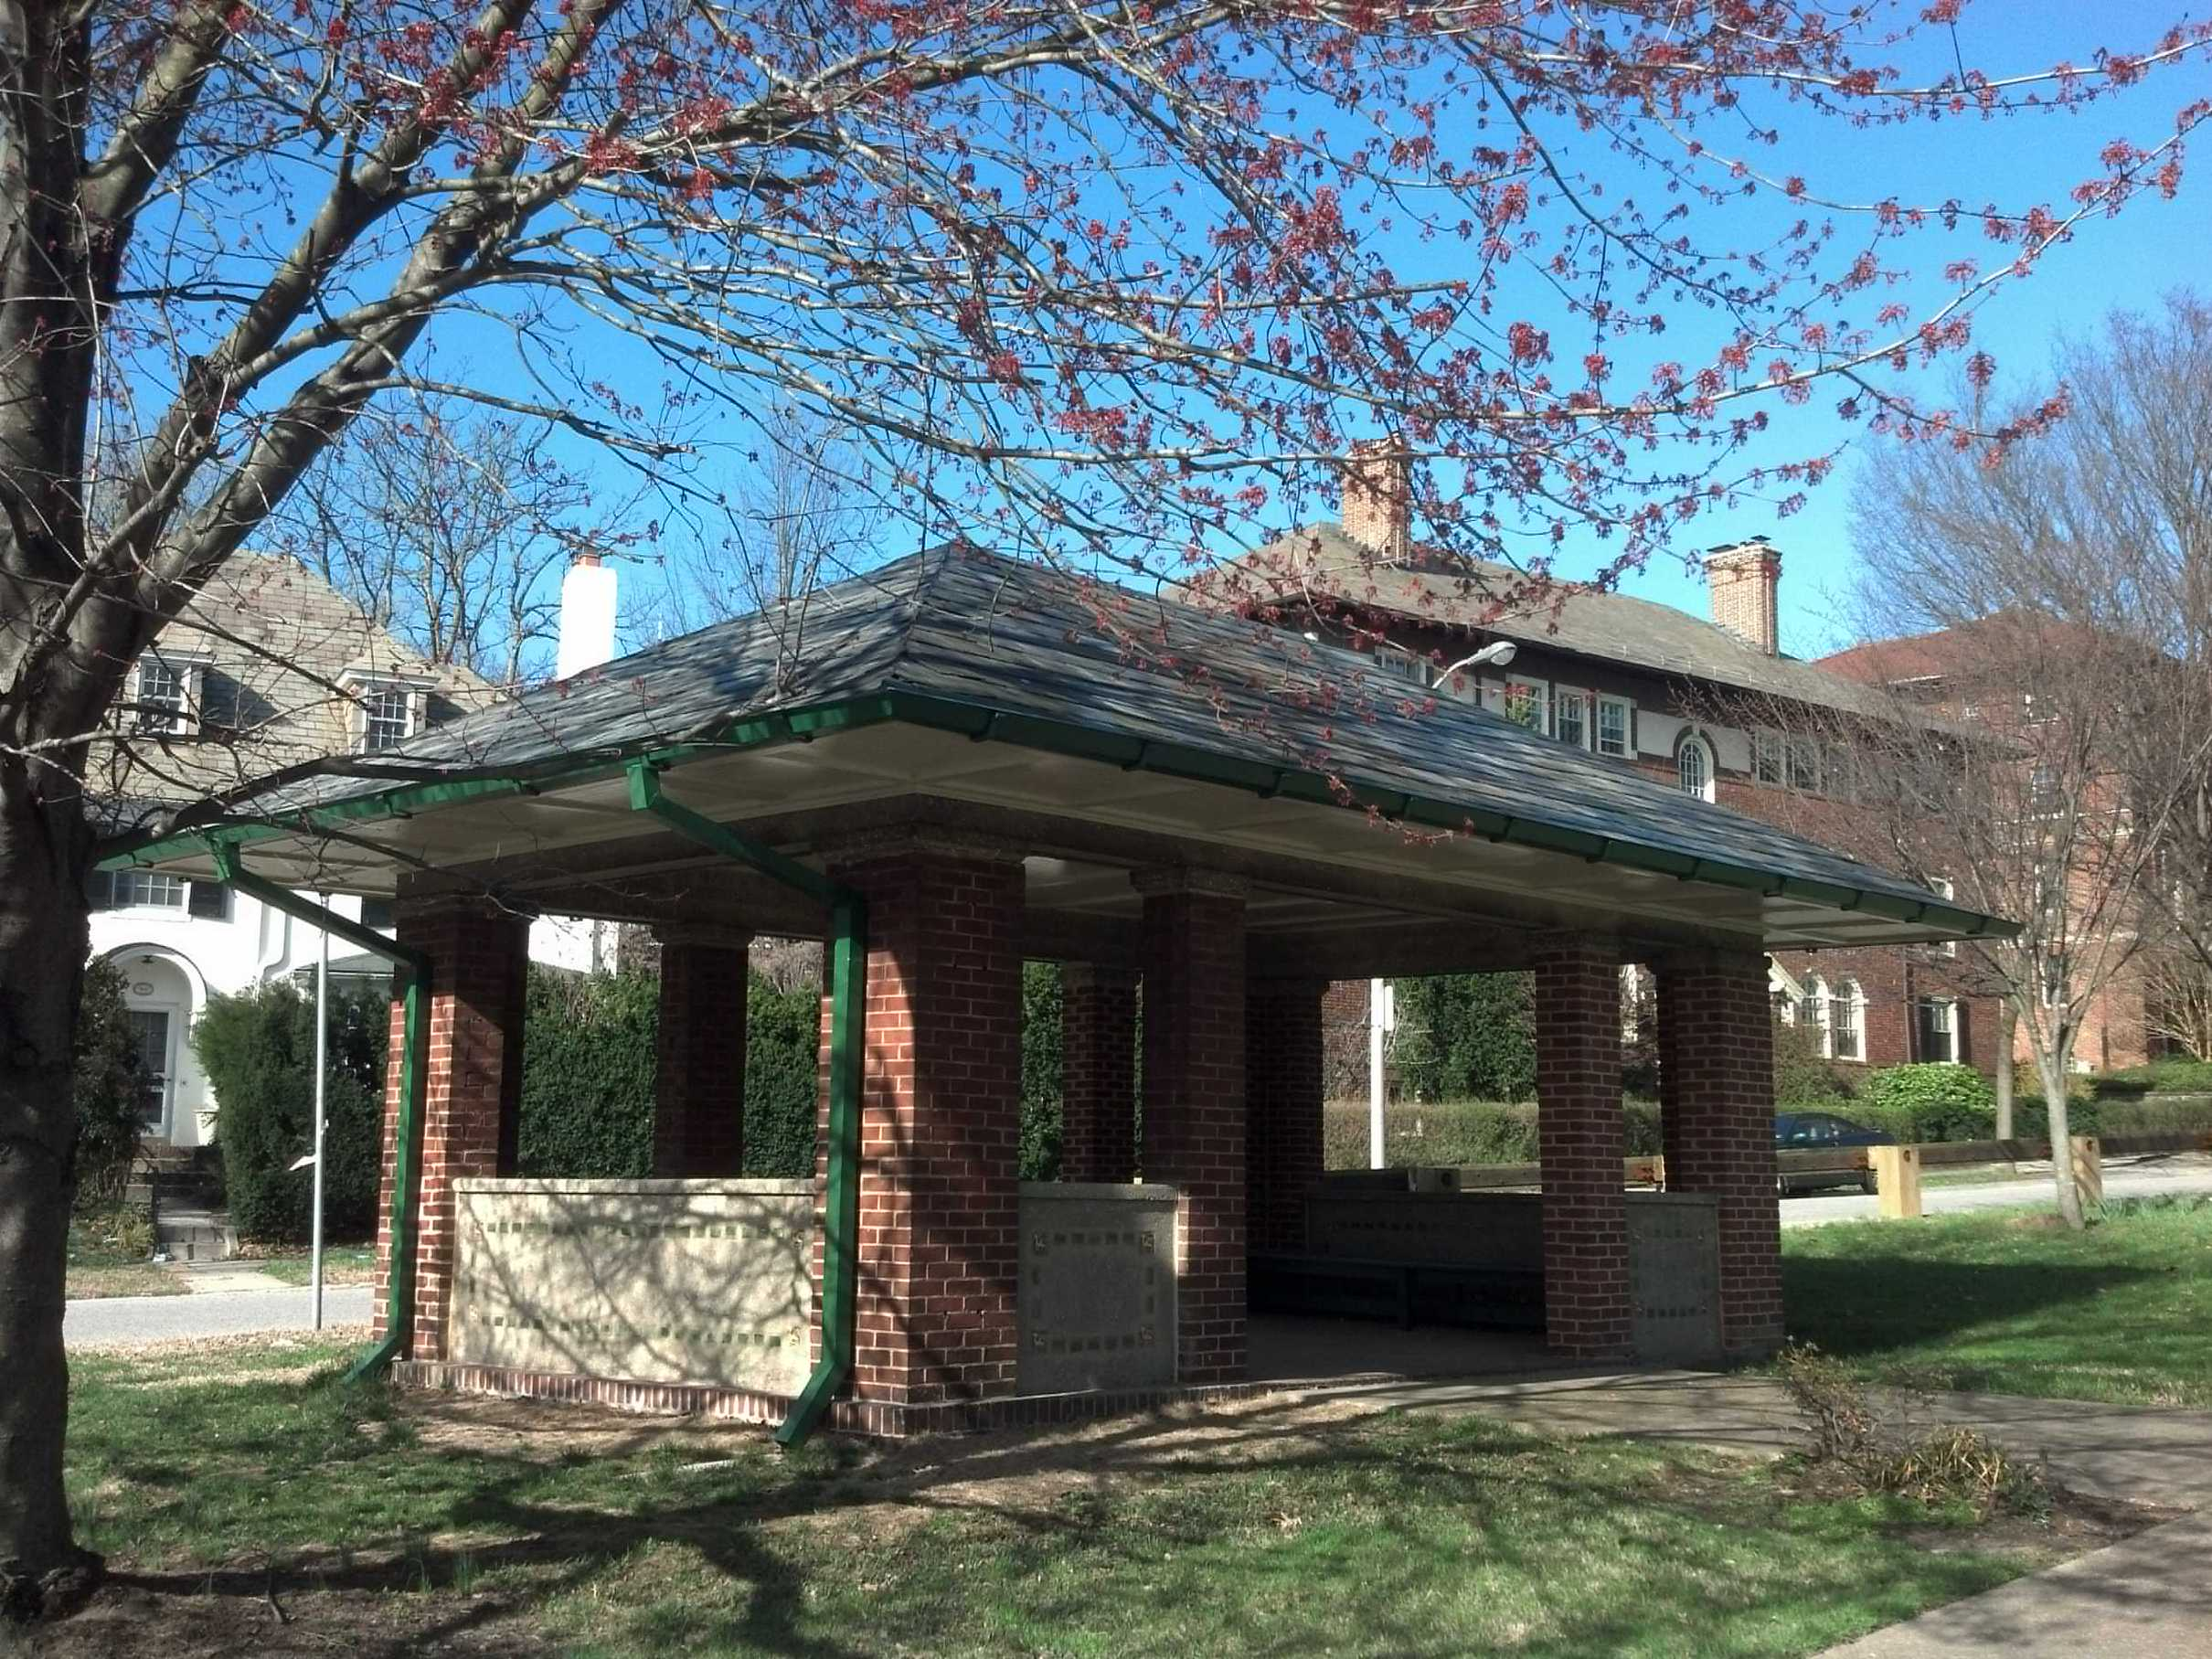 Roland Road Trolley Stop